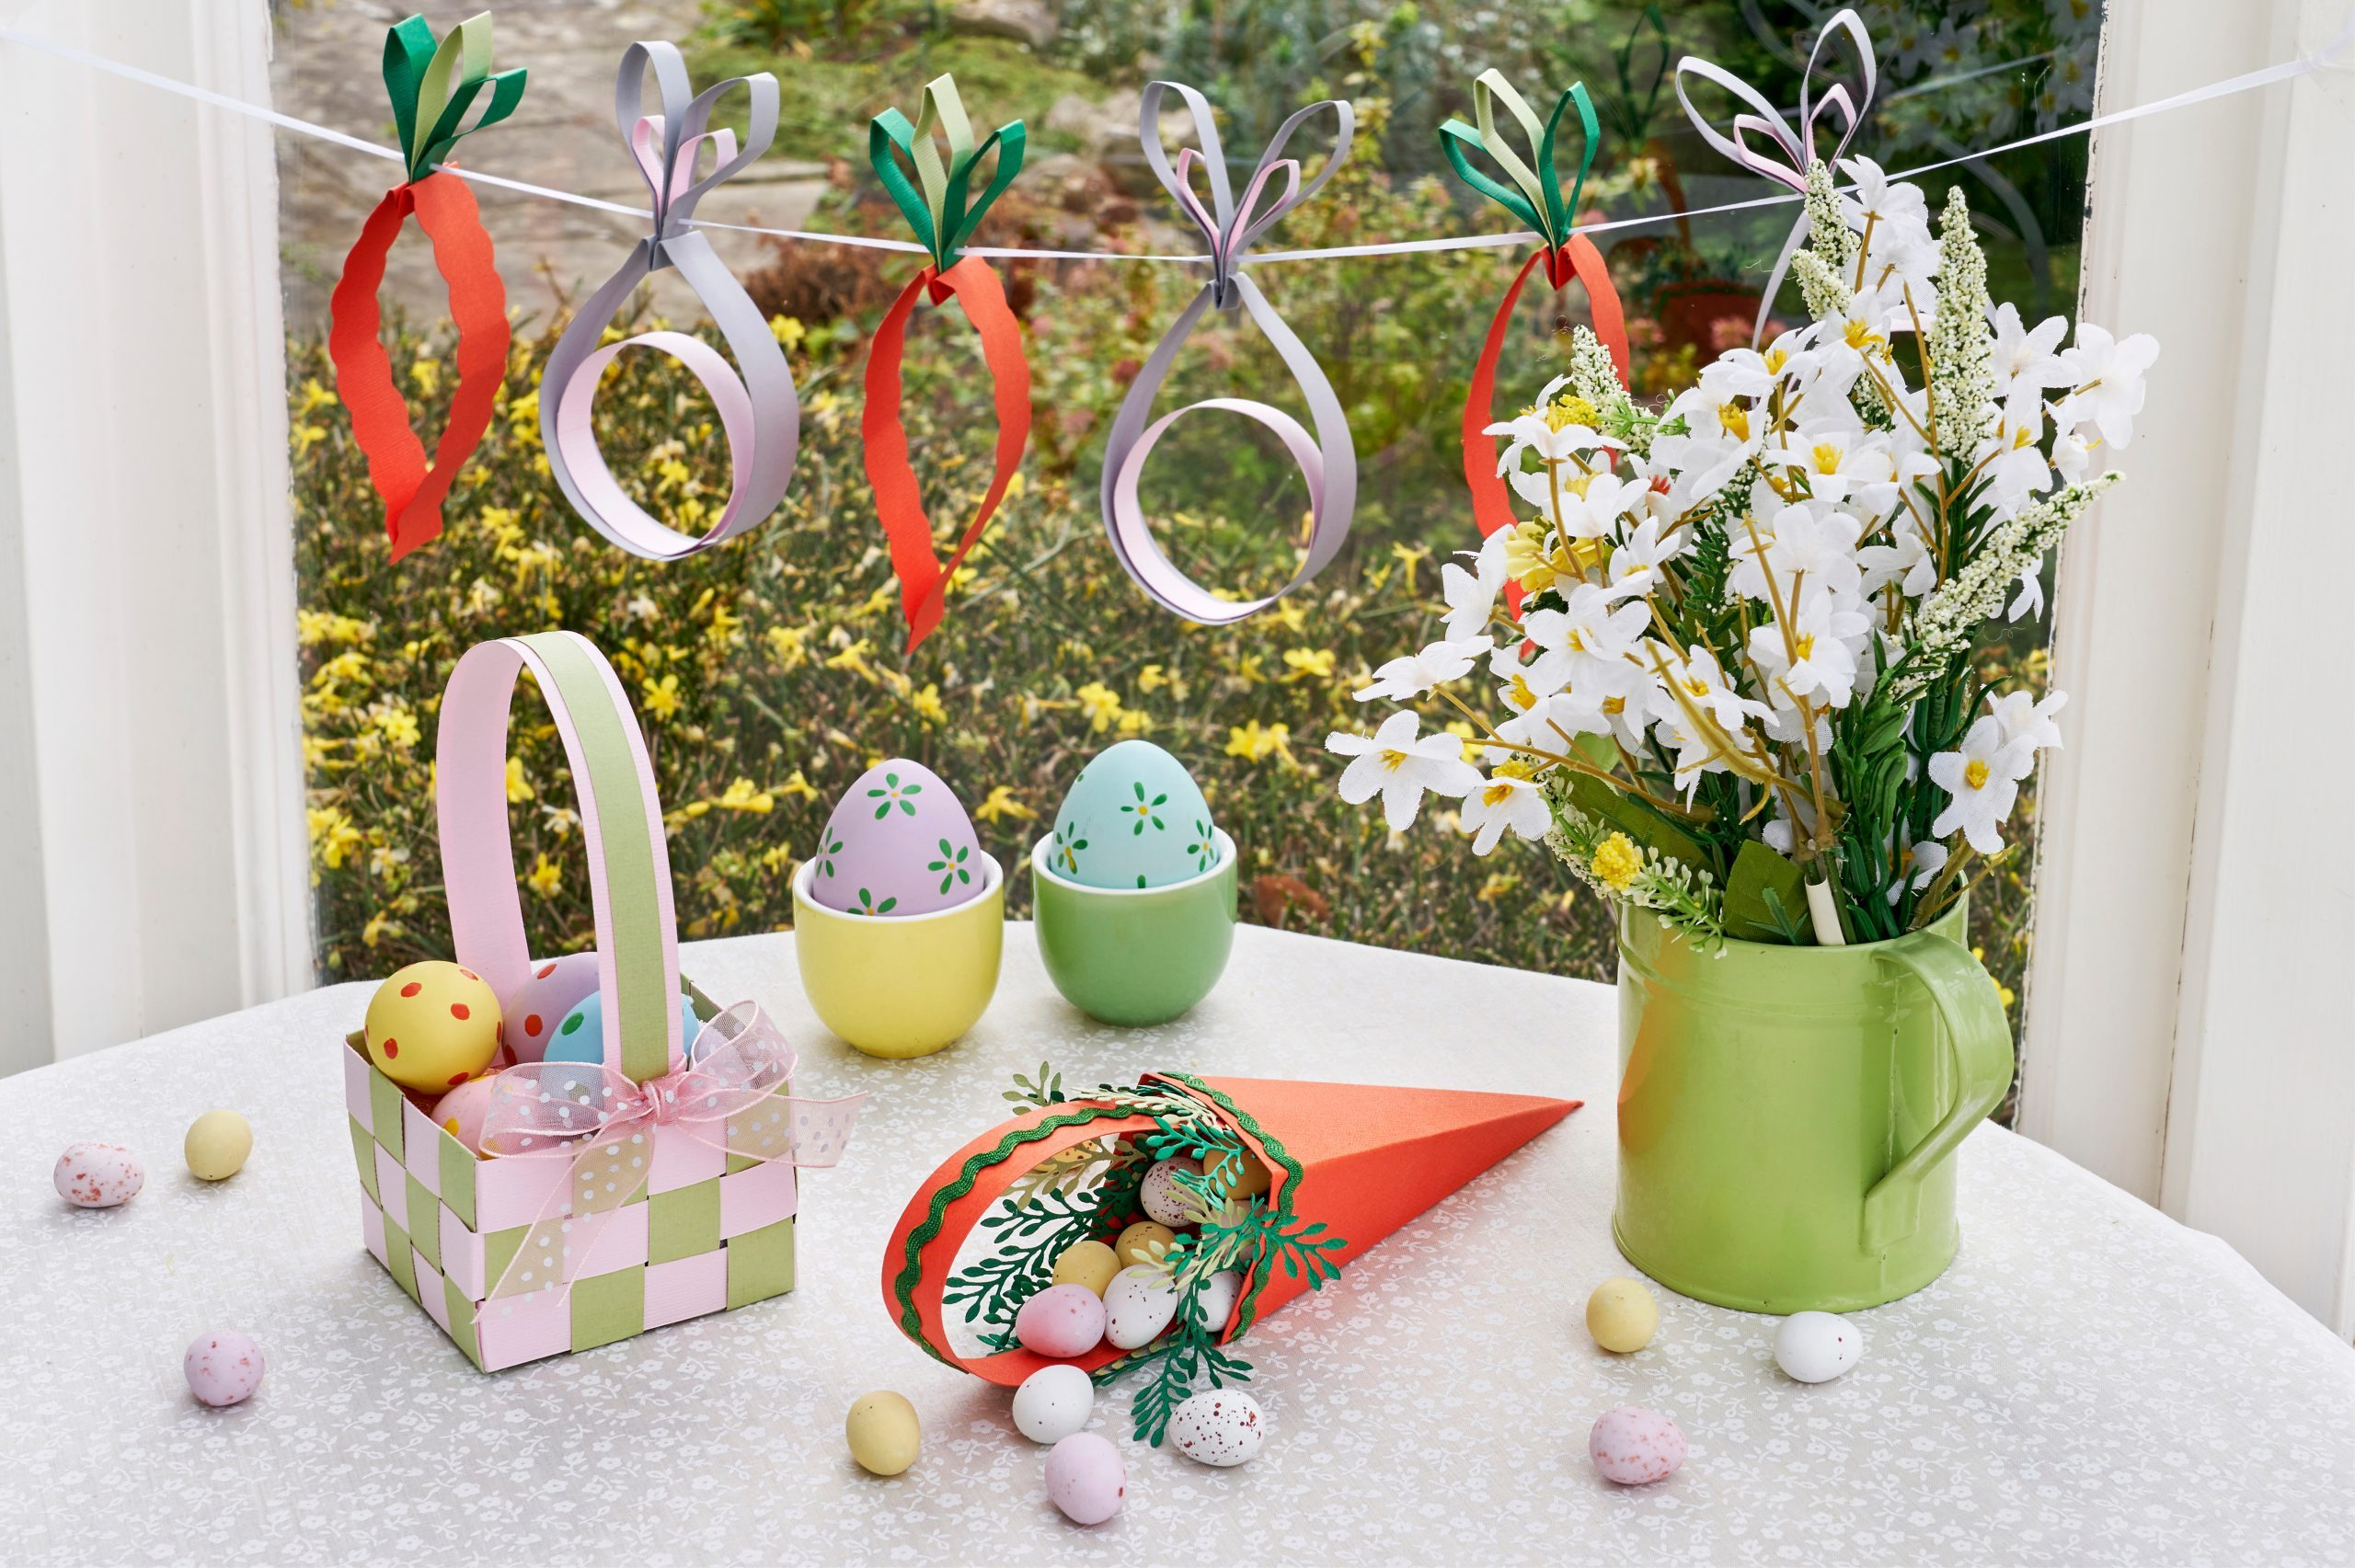 How to do an Easter Egg Hunt with paper decorations